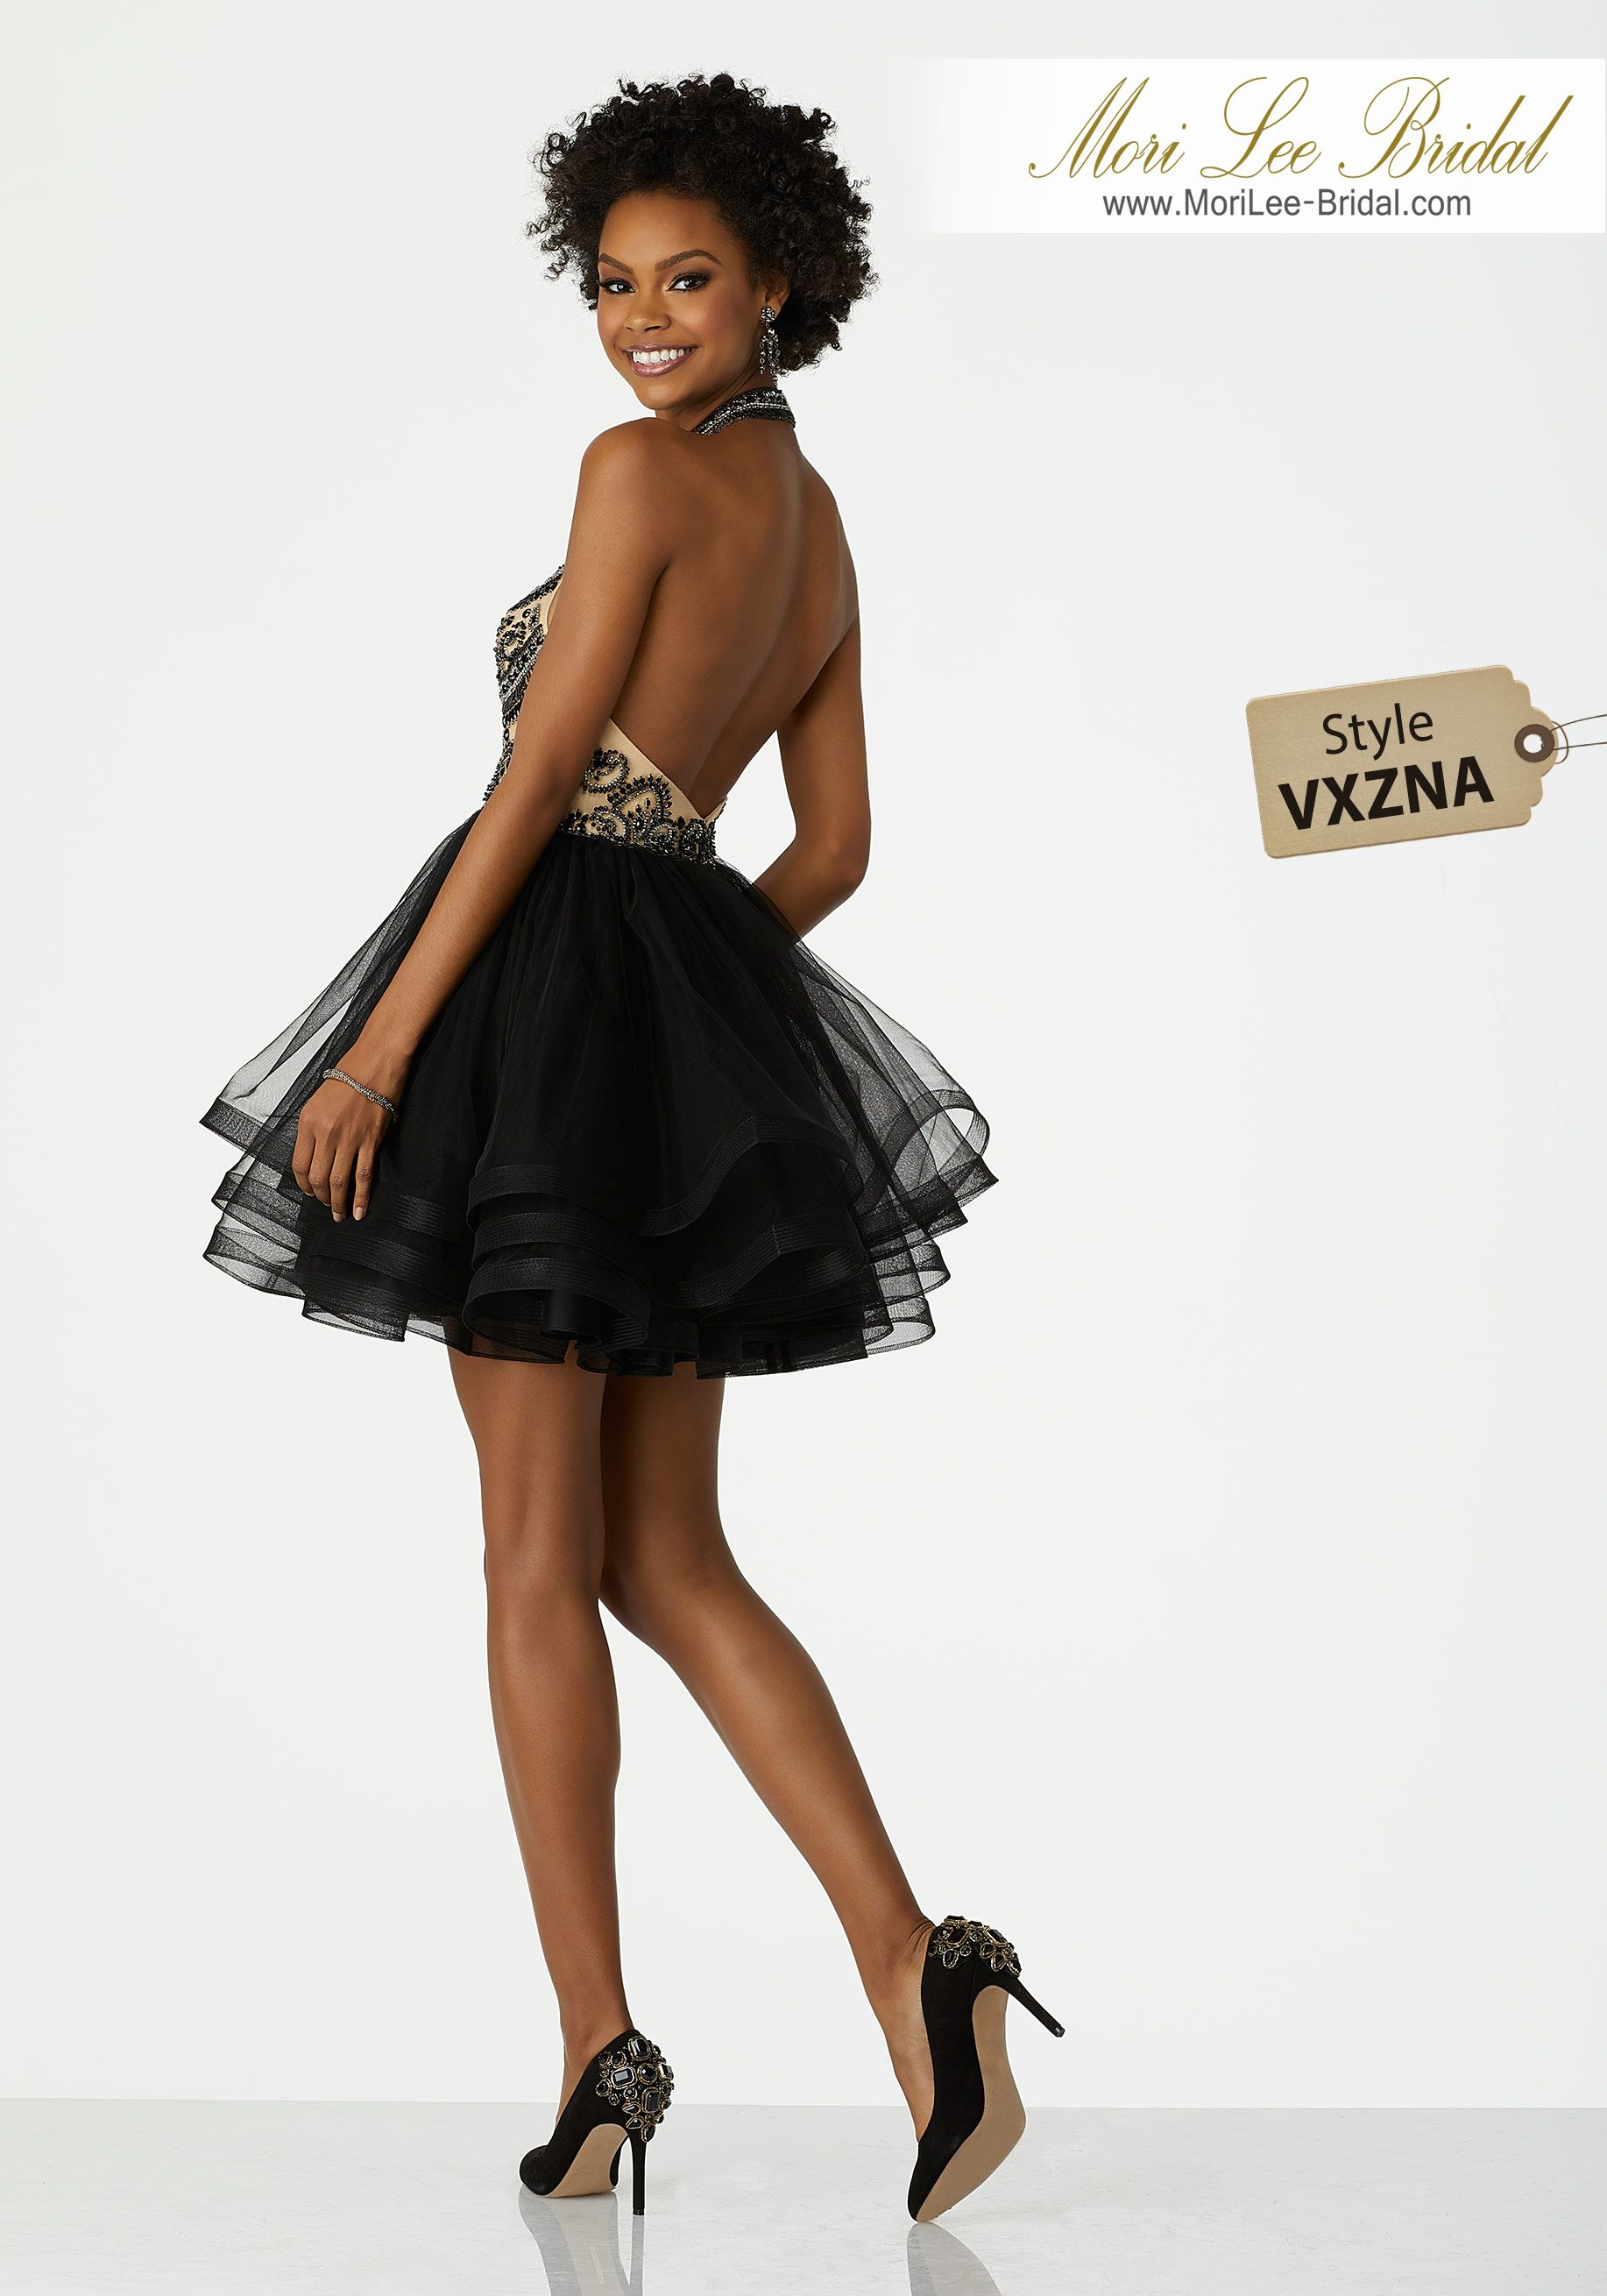 Style vxznahigh halter beaded party dress with with low back and